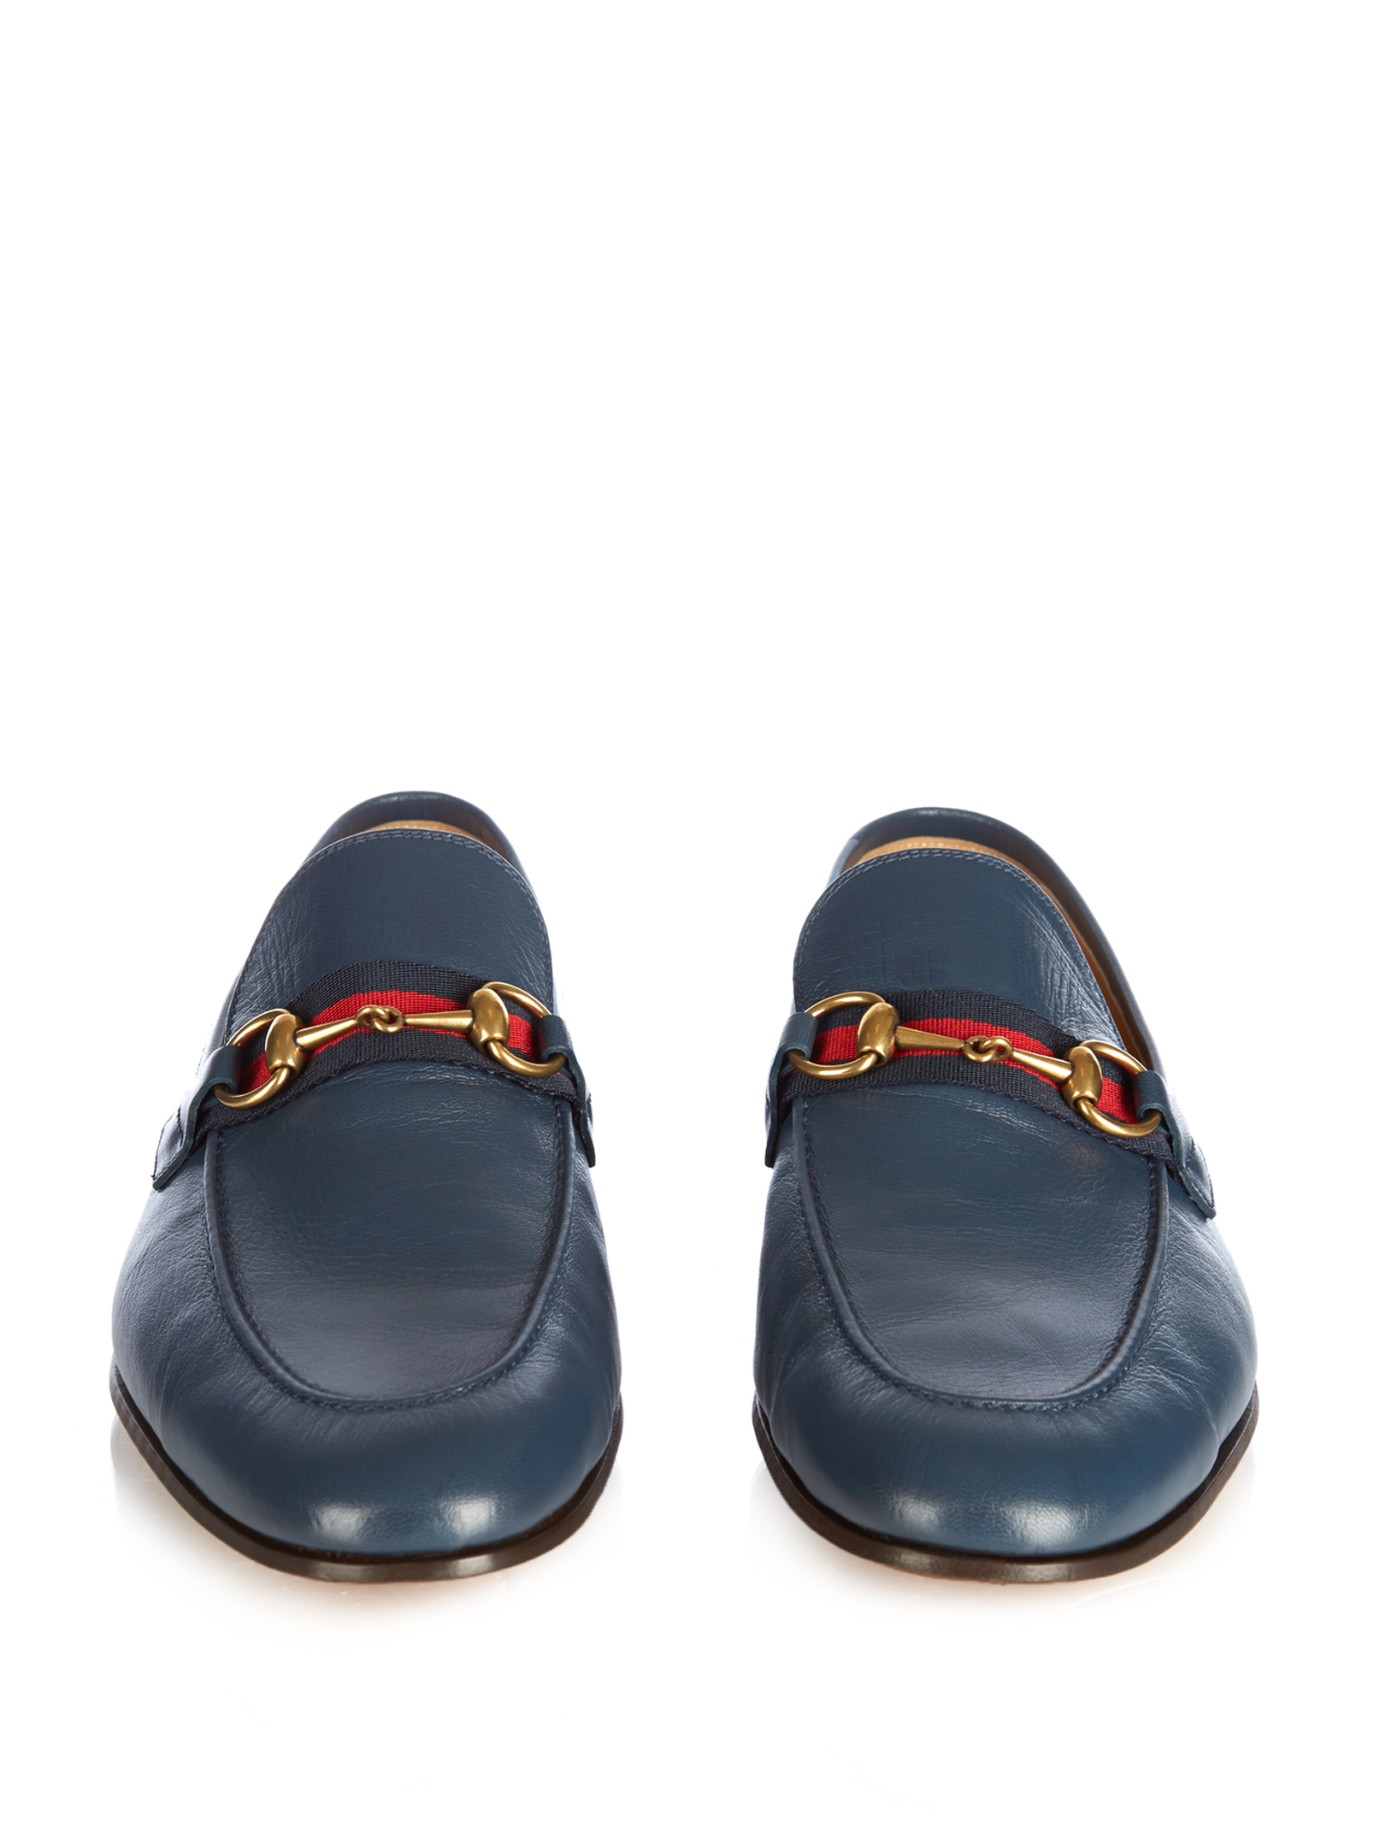 c64bf2b410b Gucci Horsebit Loafers Blue - Best Picture Of Blue Imageve.Org